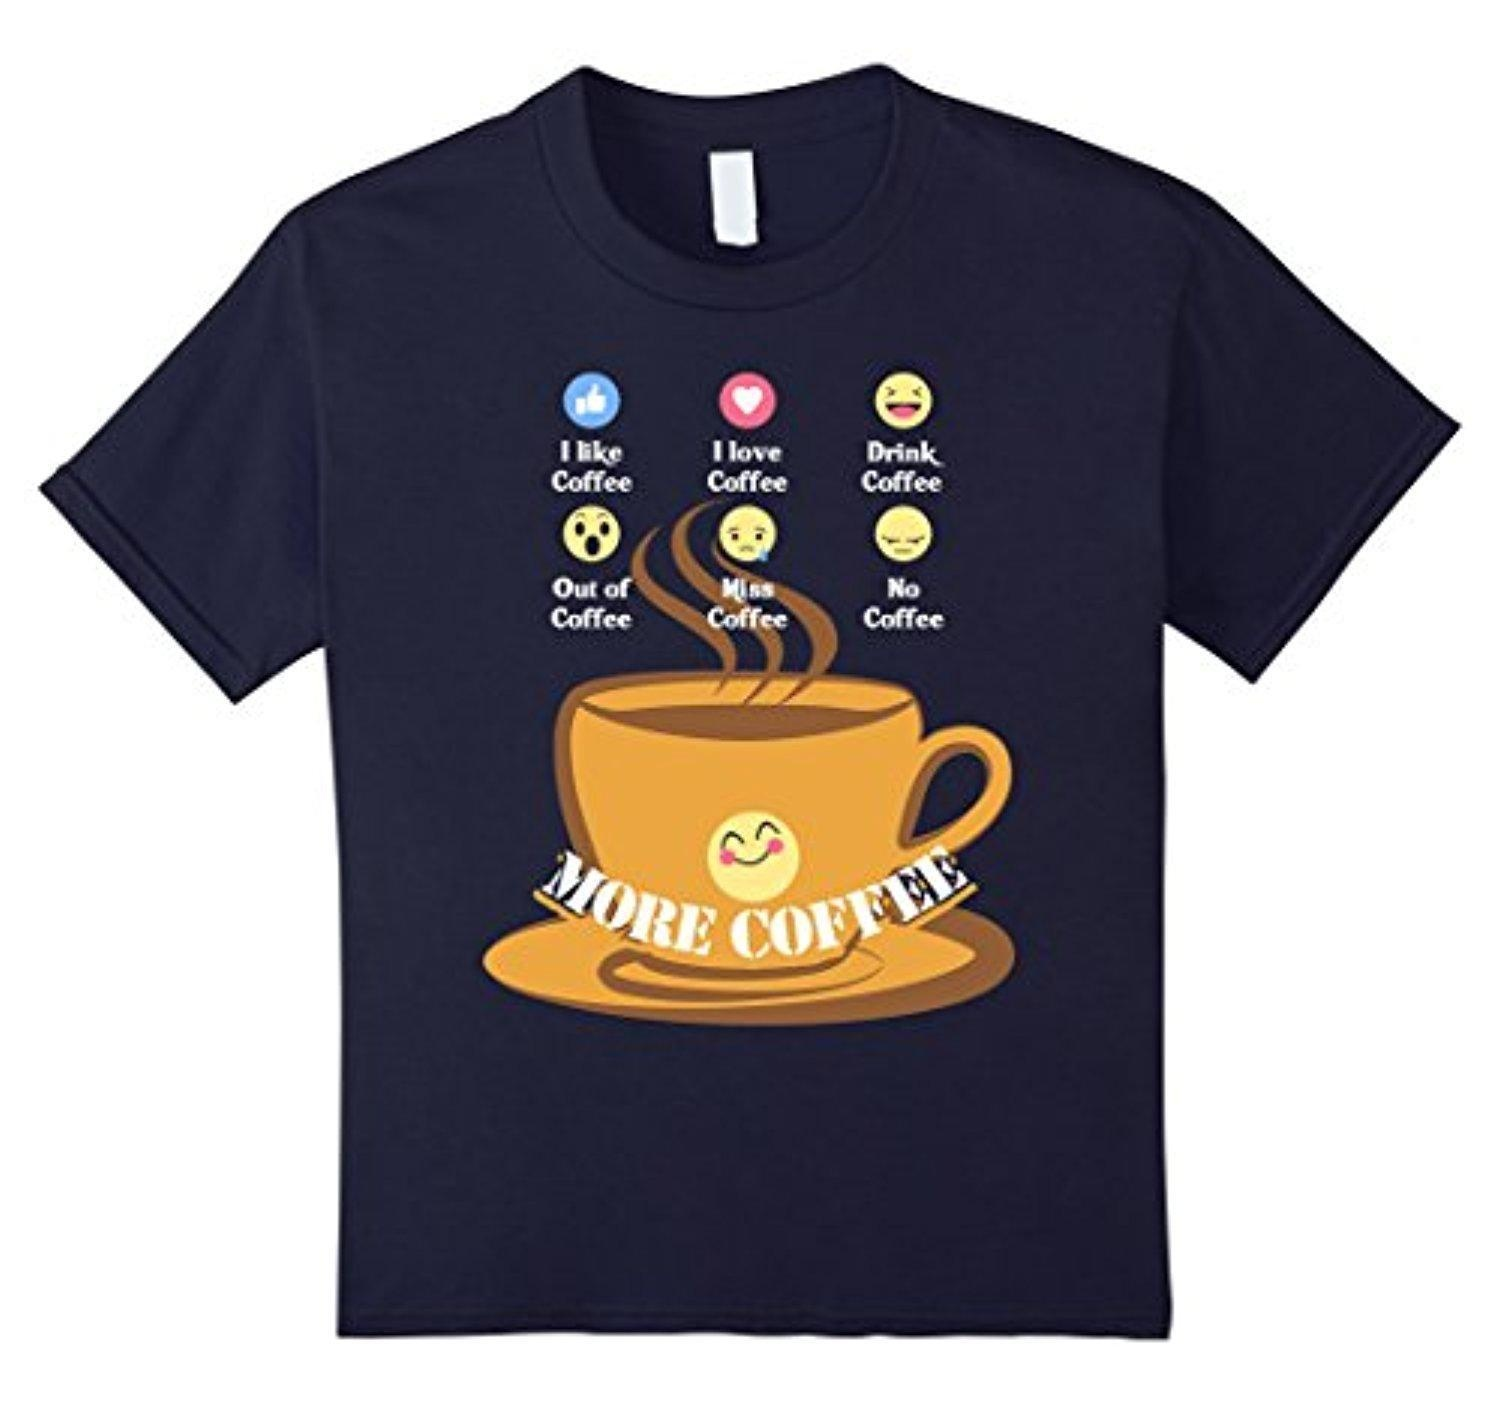 Online Store Kids Funny Coffee Lover Birthday Gift T Shirts Emoji Love 4 Navy